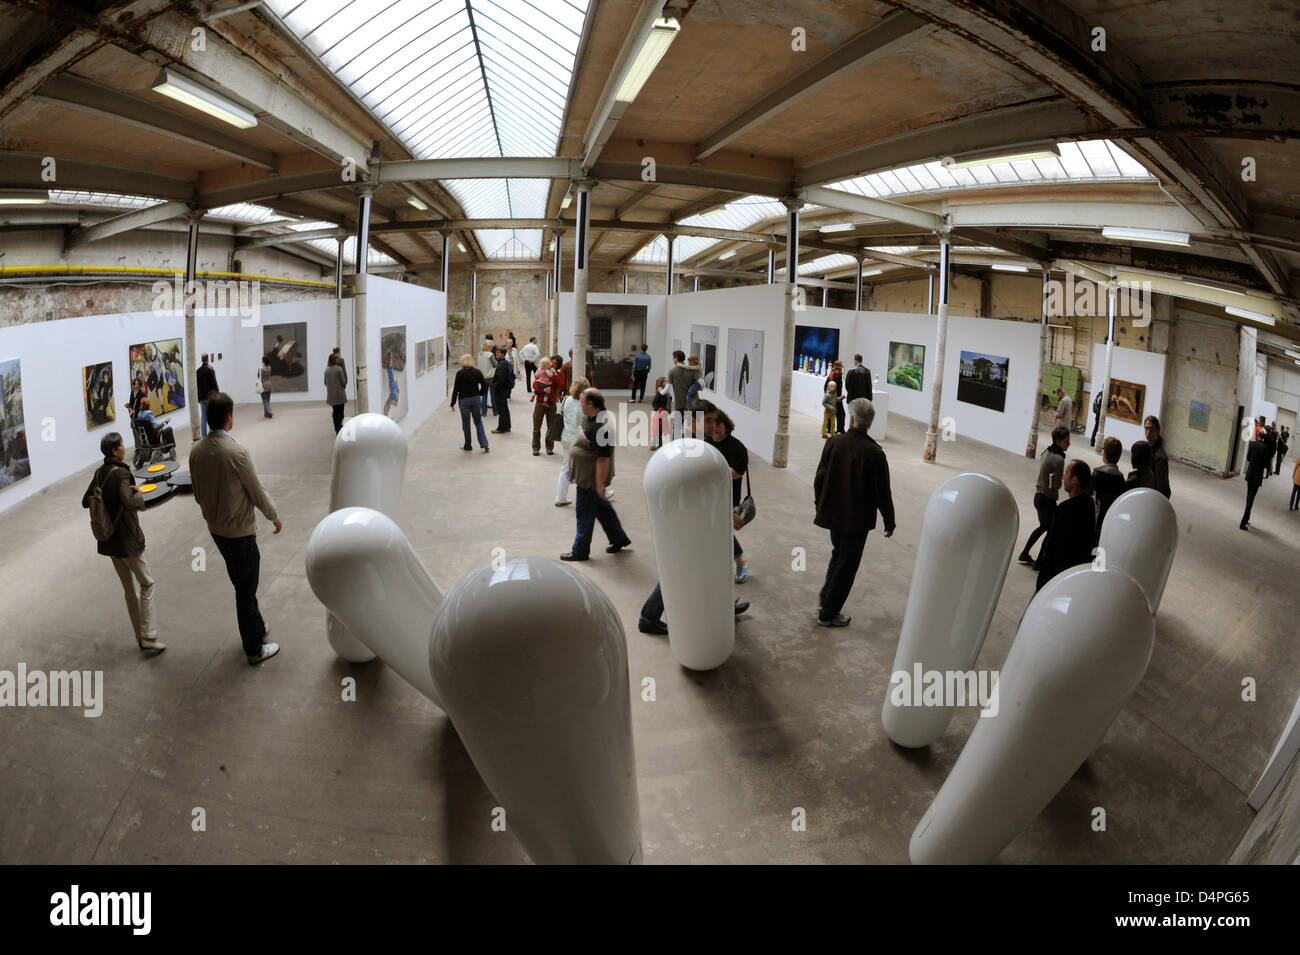 Visitors take a look at an art exhibition at the former cotton spinning works ?Baumwollspinnerei?, an industrial - Stock Image